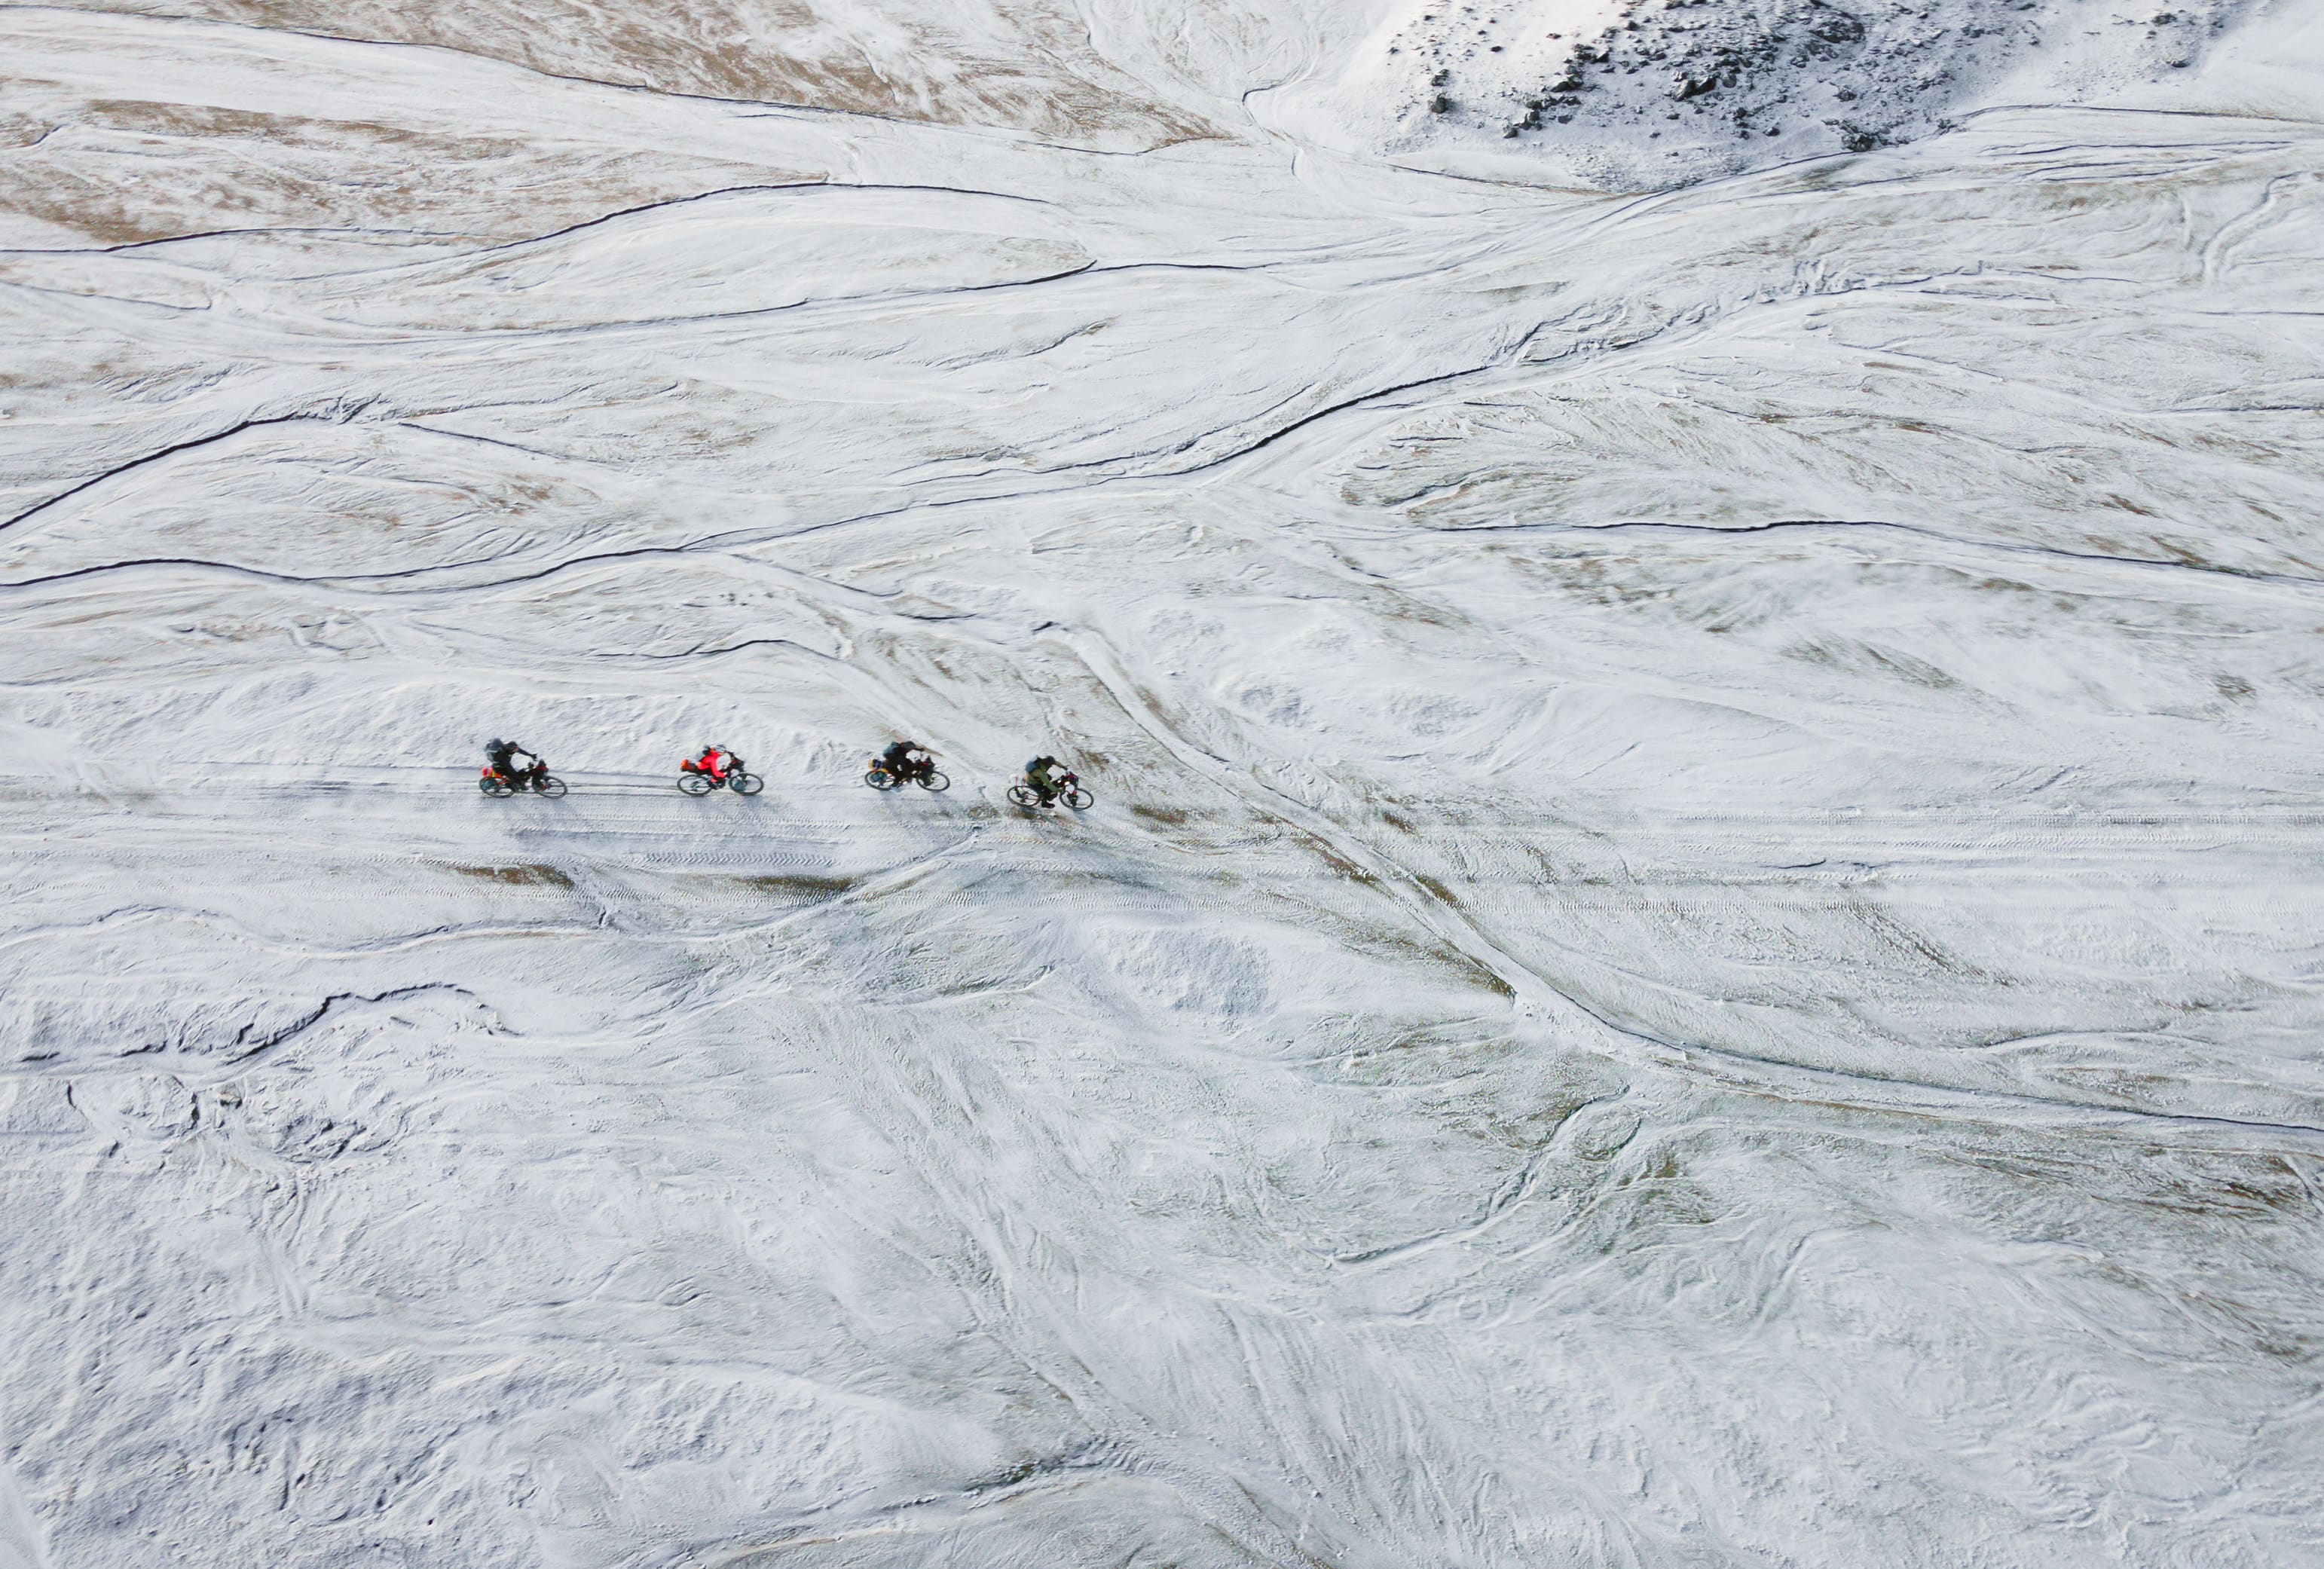 Group riding bikes in icy wilderness